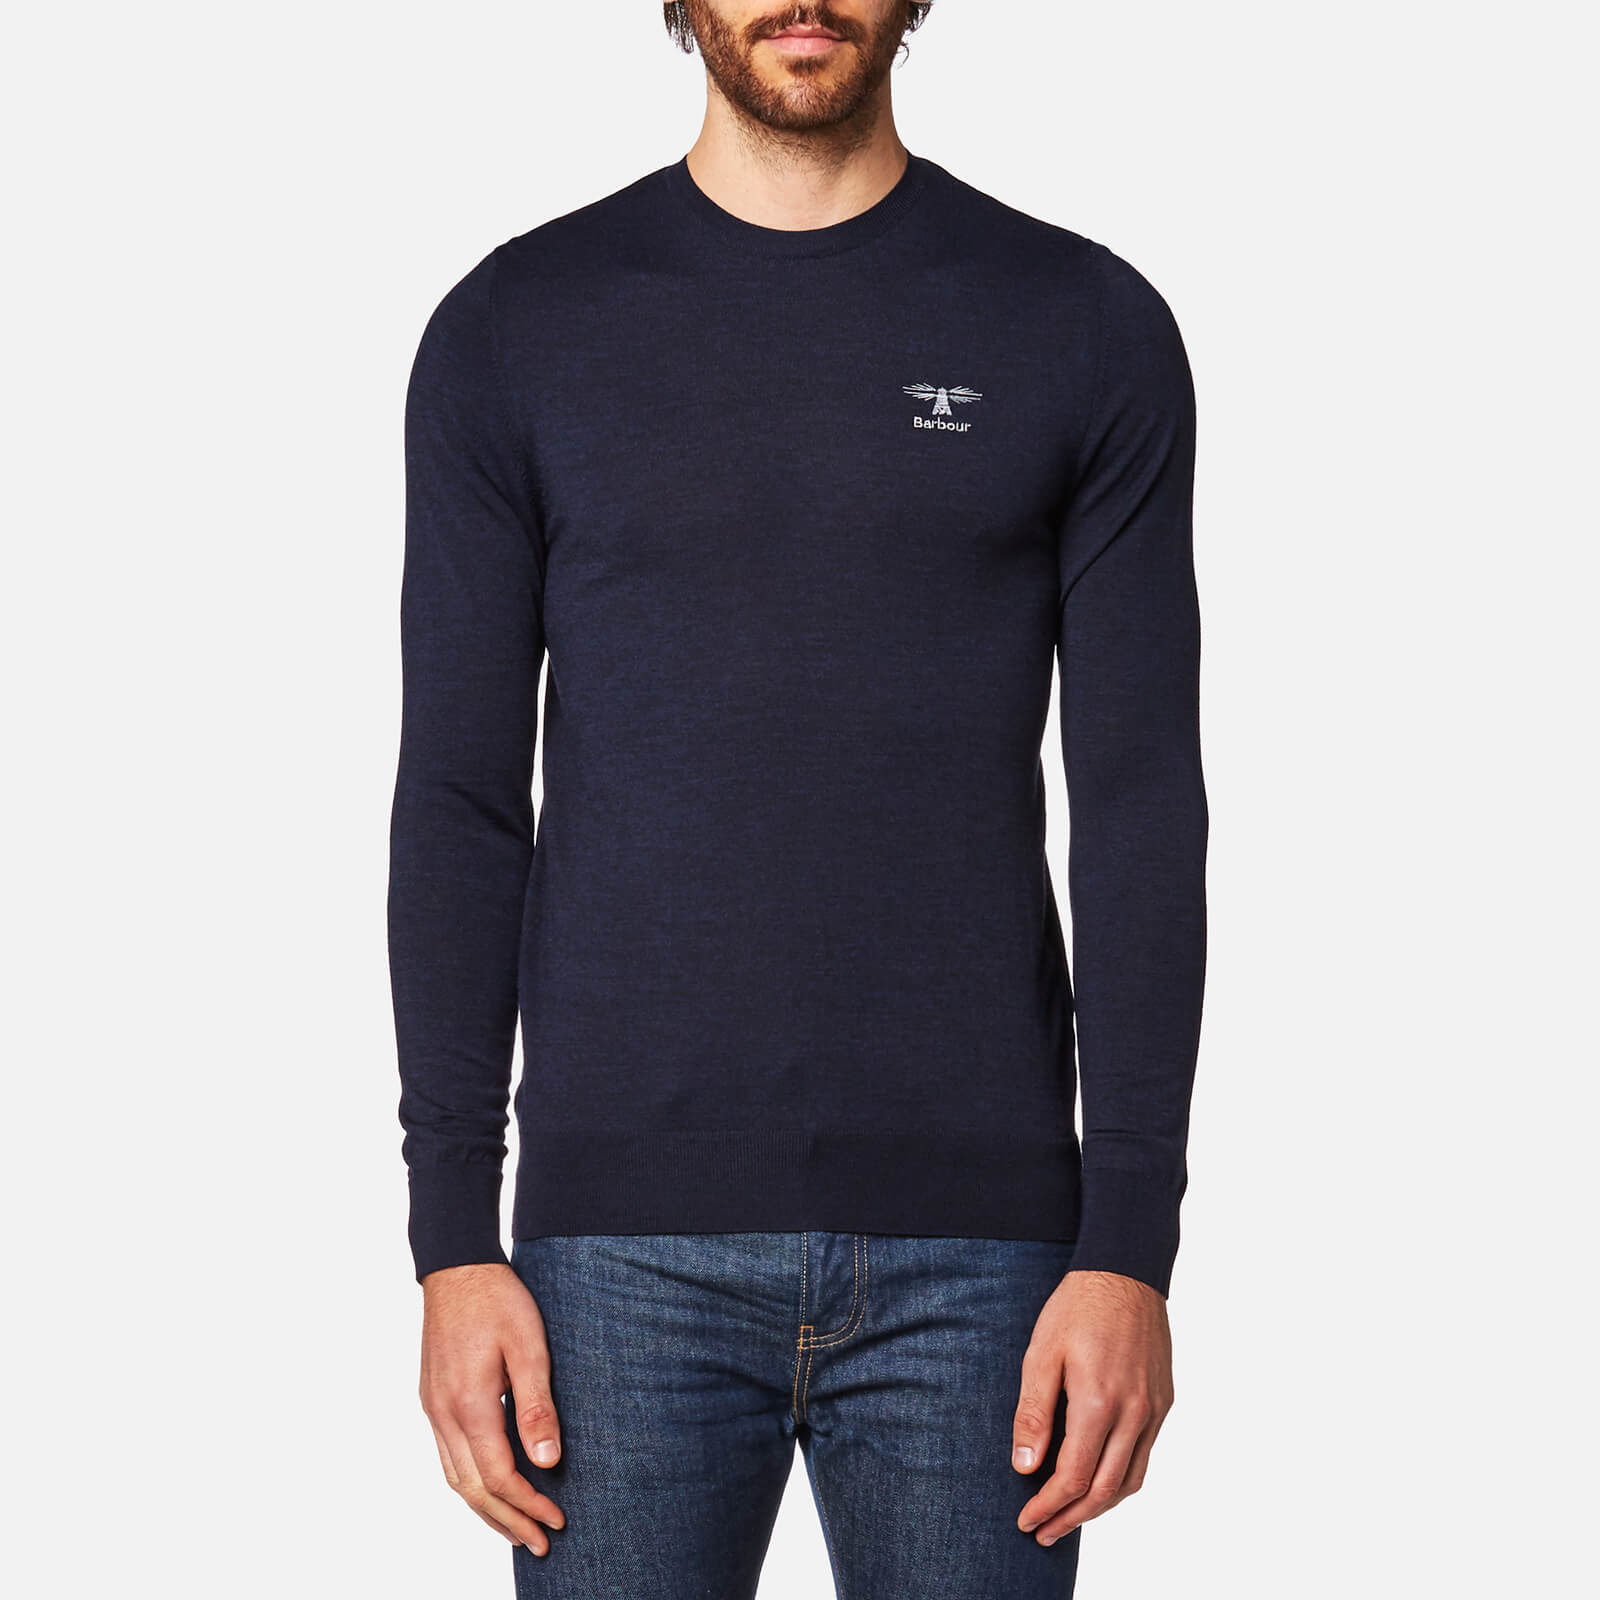 baf49d1e2 Barbour Men s Harley Crew Neck Knitted Jumper - Navy - Free UK ...